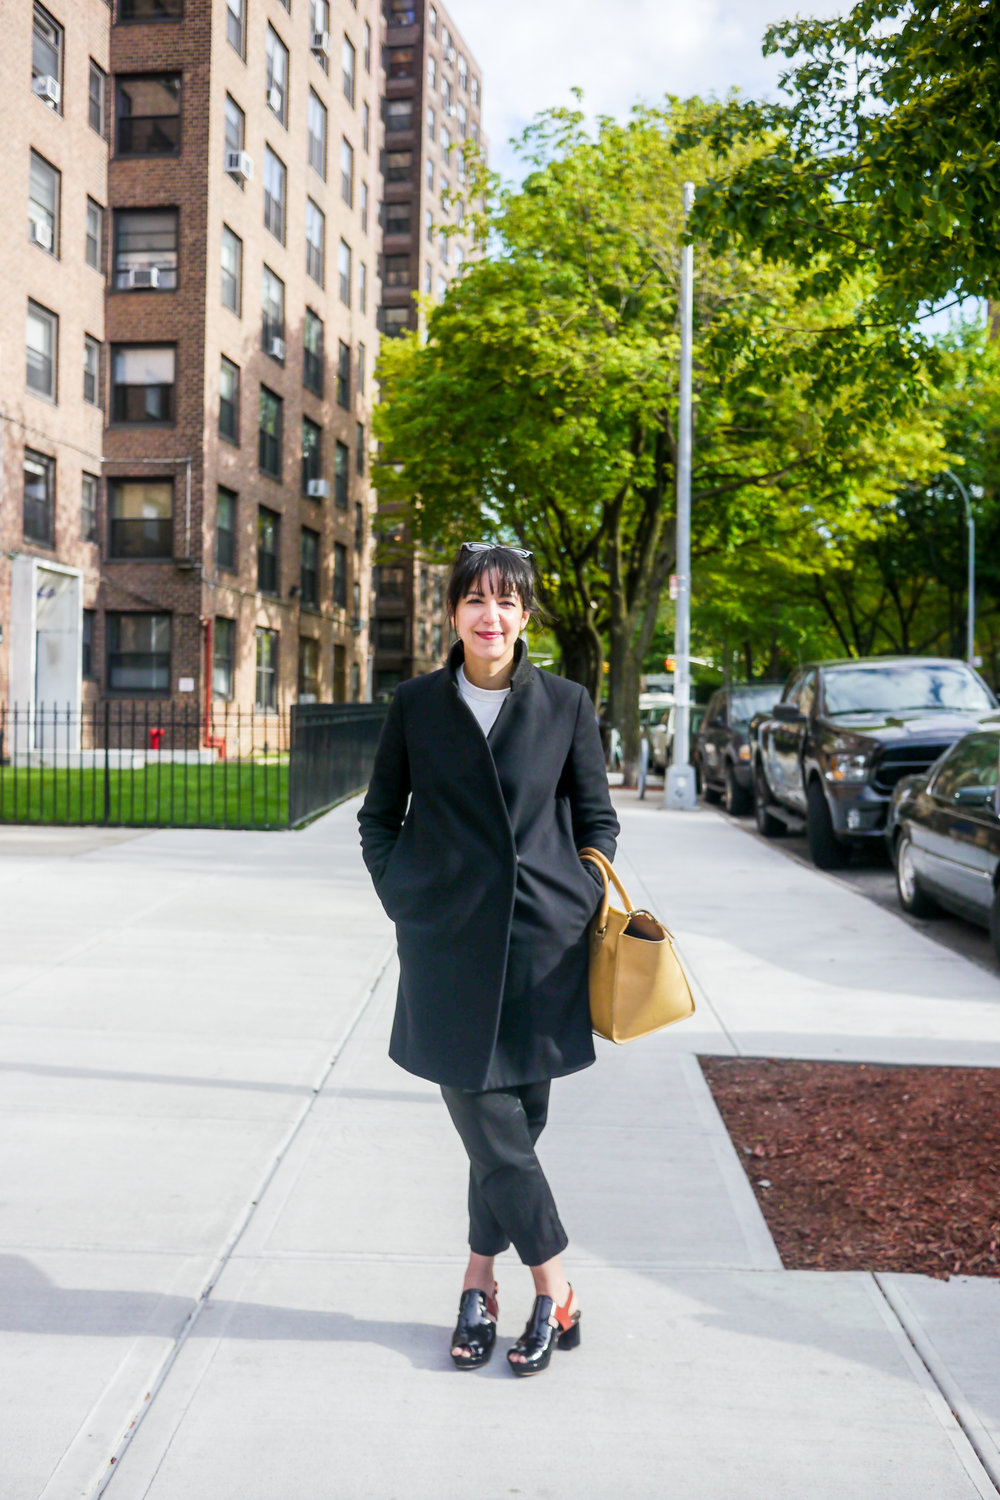 Coat, COS ; Pants, M. Patmos ;  Sweatshirt, Everlane  ;  Shoes, Rachel Comey  ;  Bag, Clare V.